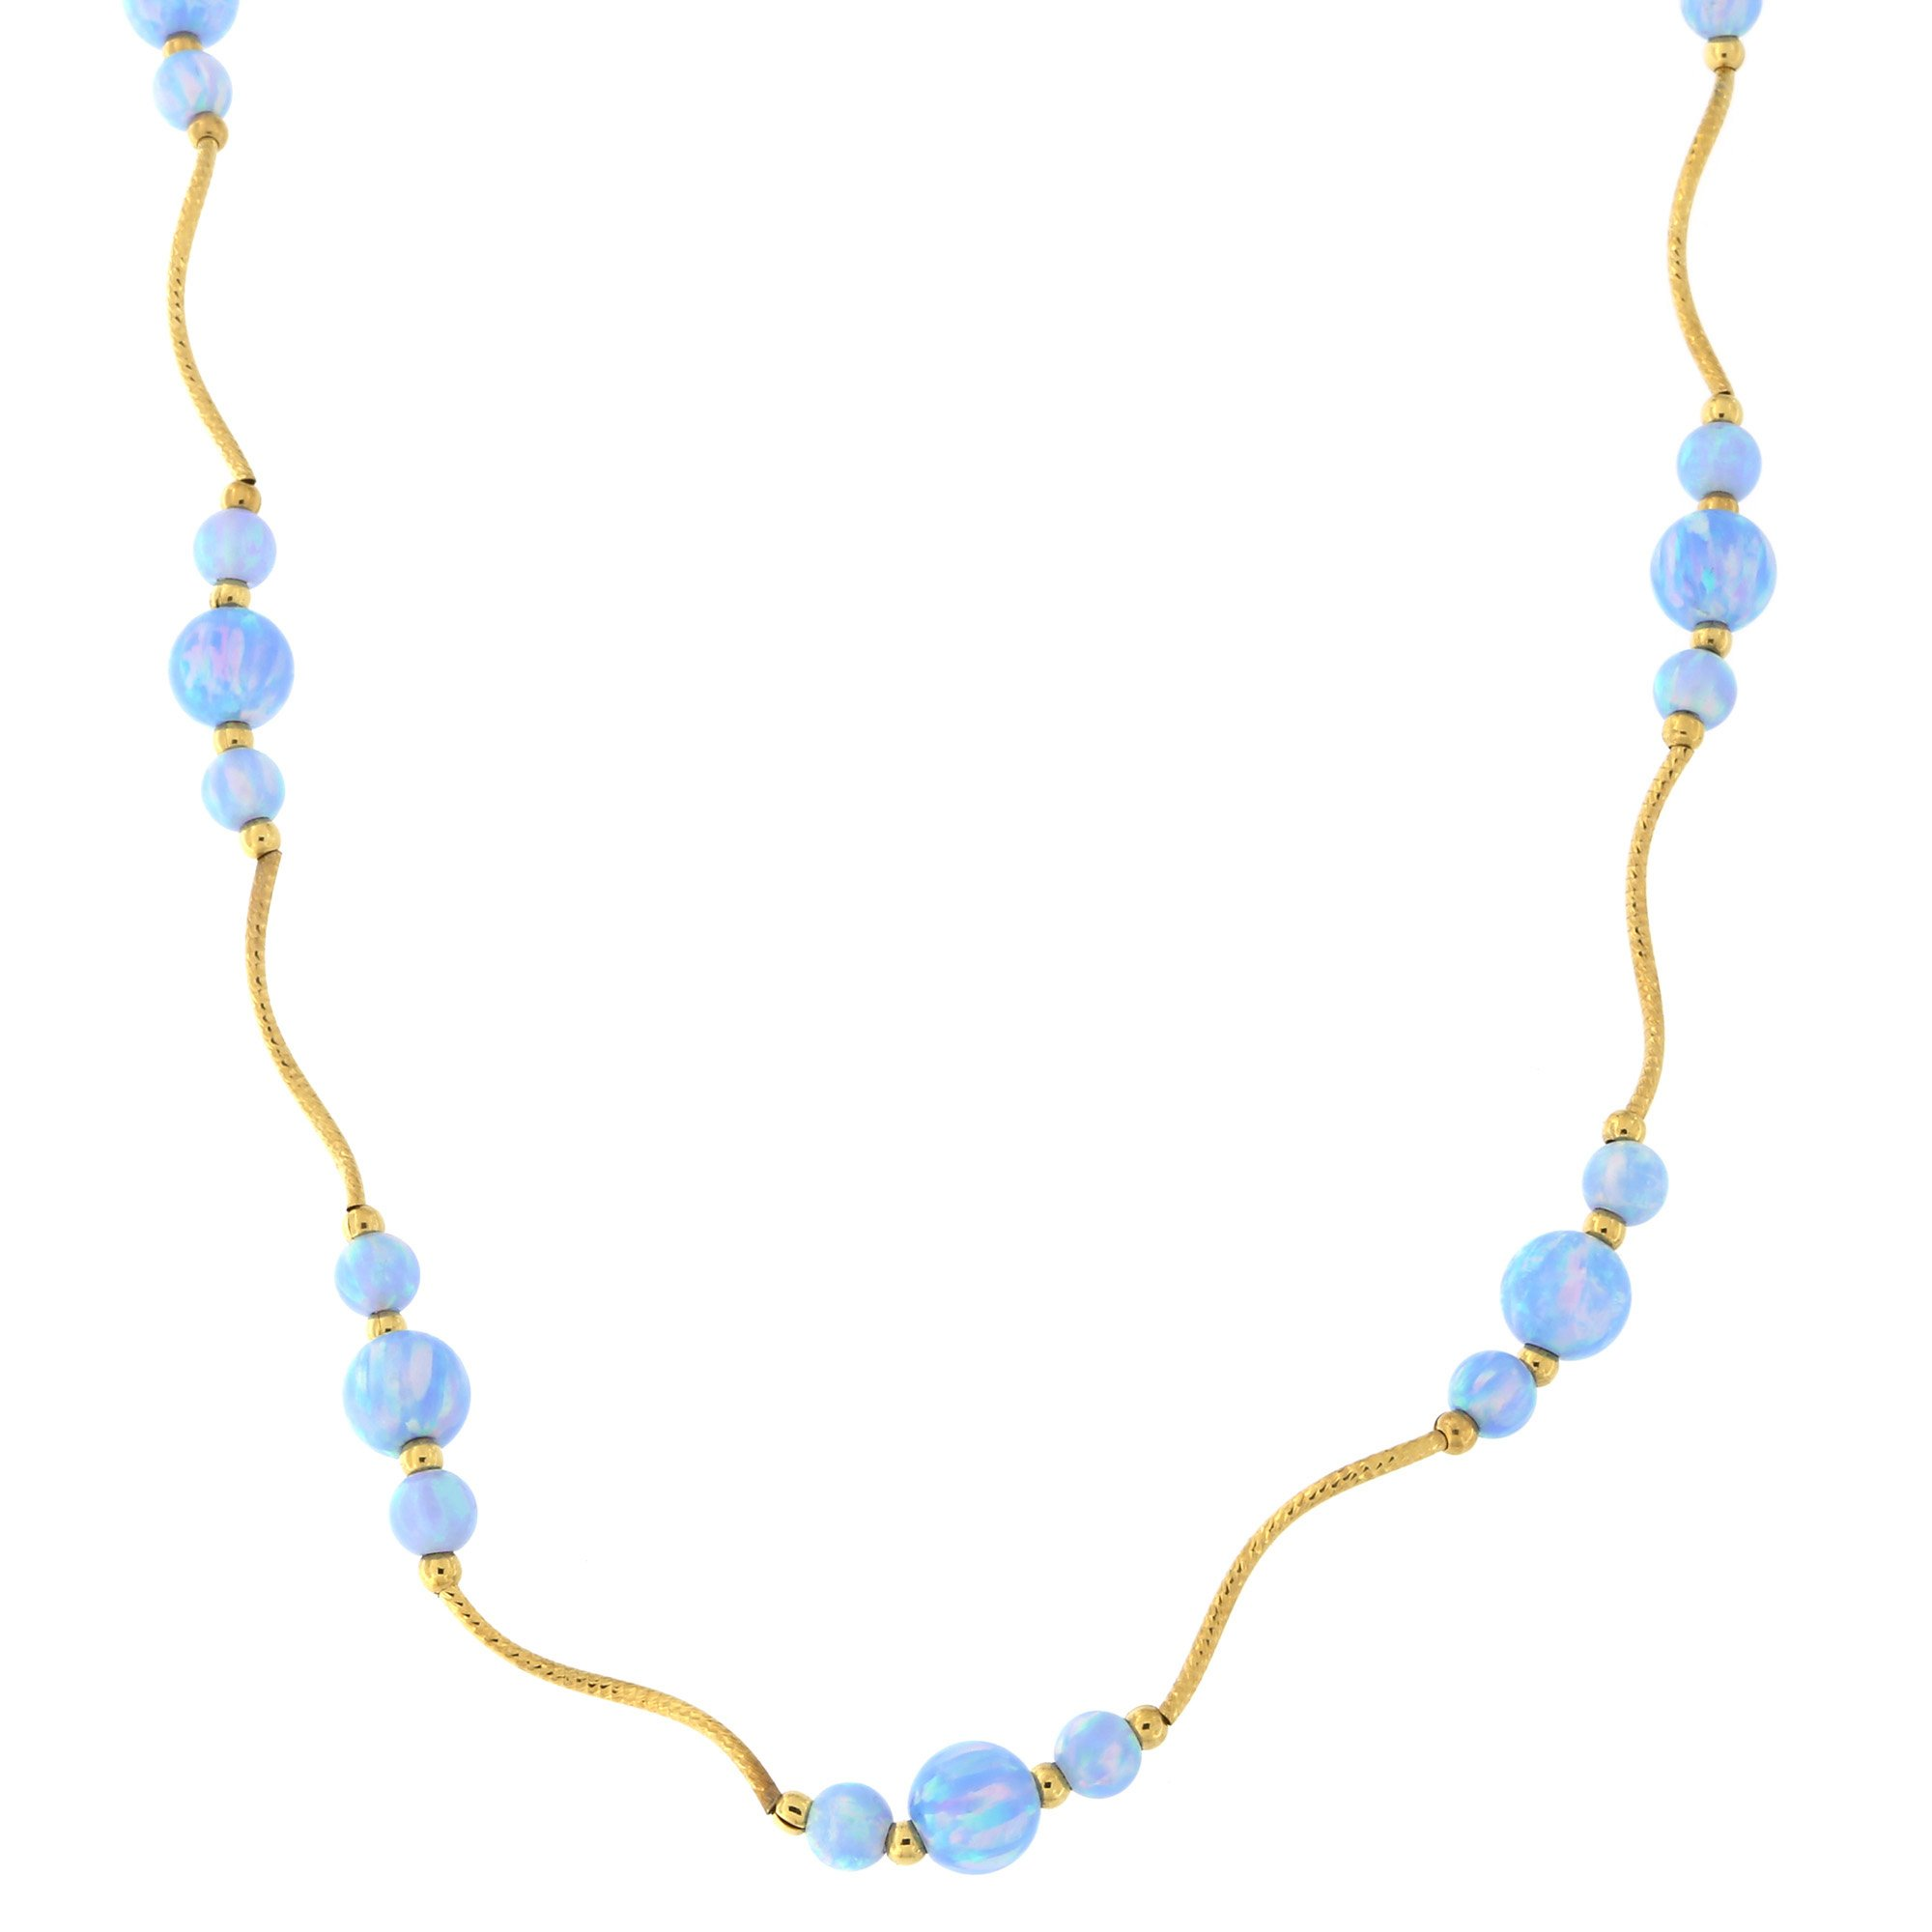 Beauniq 14k Yellow Gold Diamond Cut Graduated Simulated Light Blue Opal Station Necklace, 17 inches